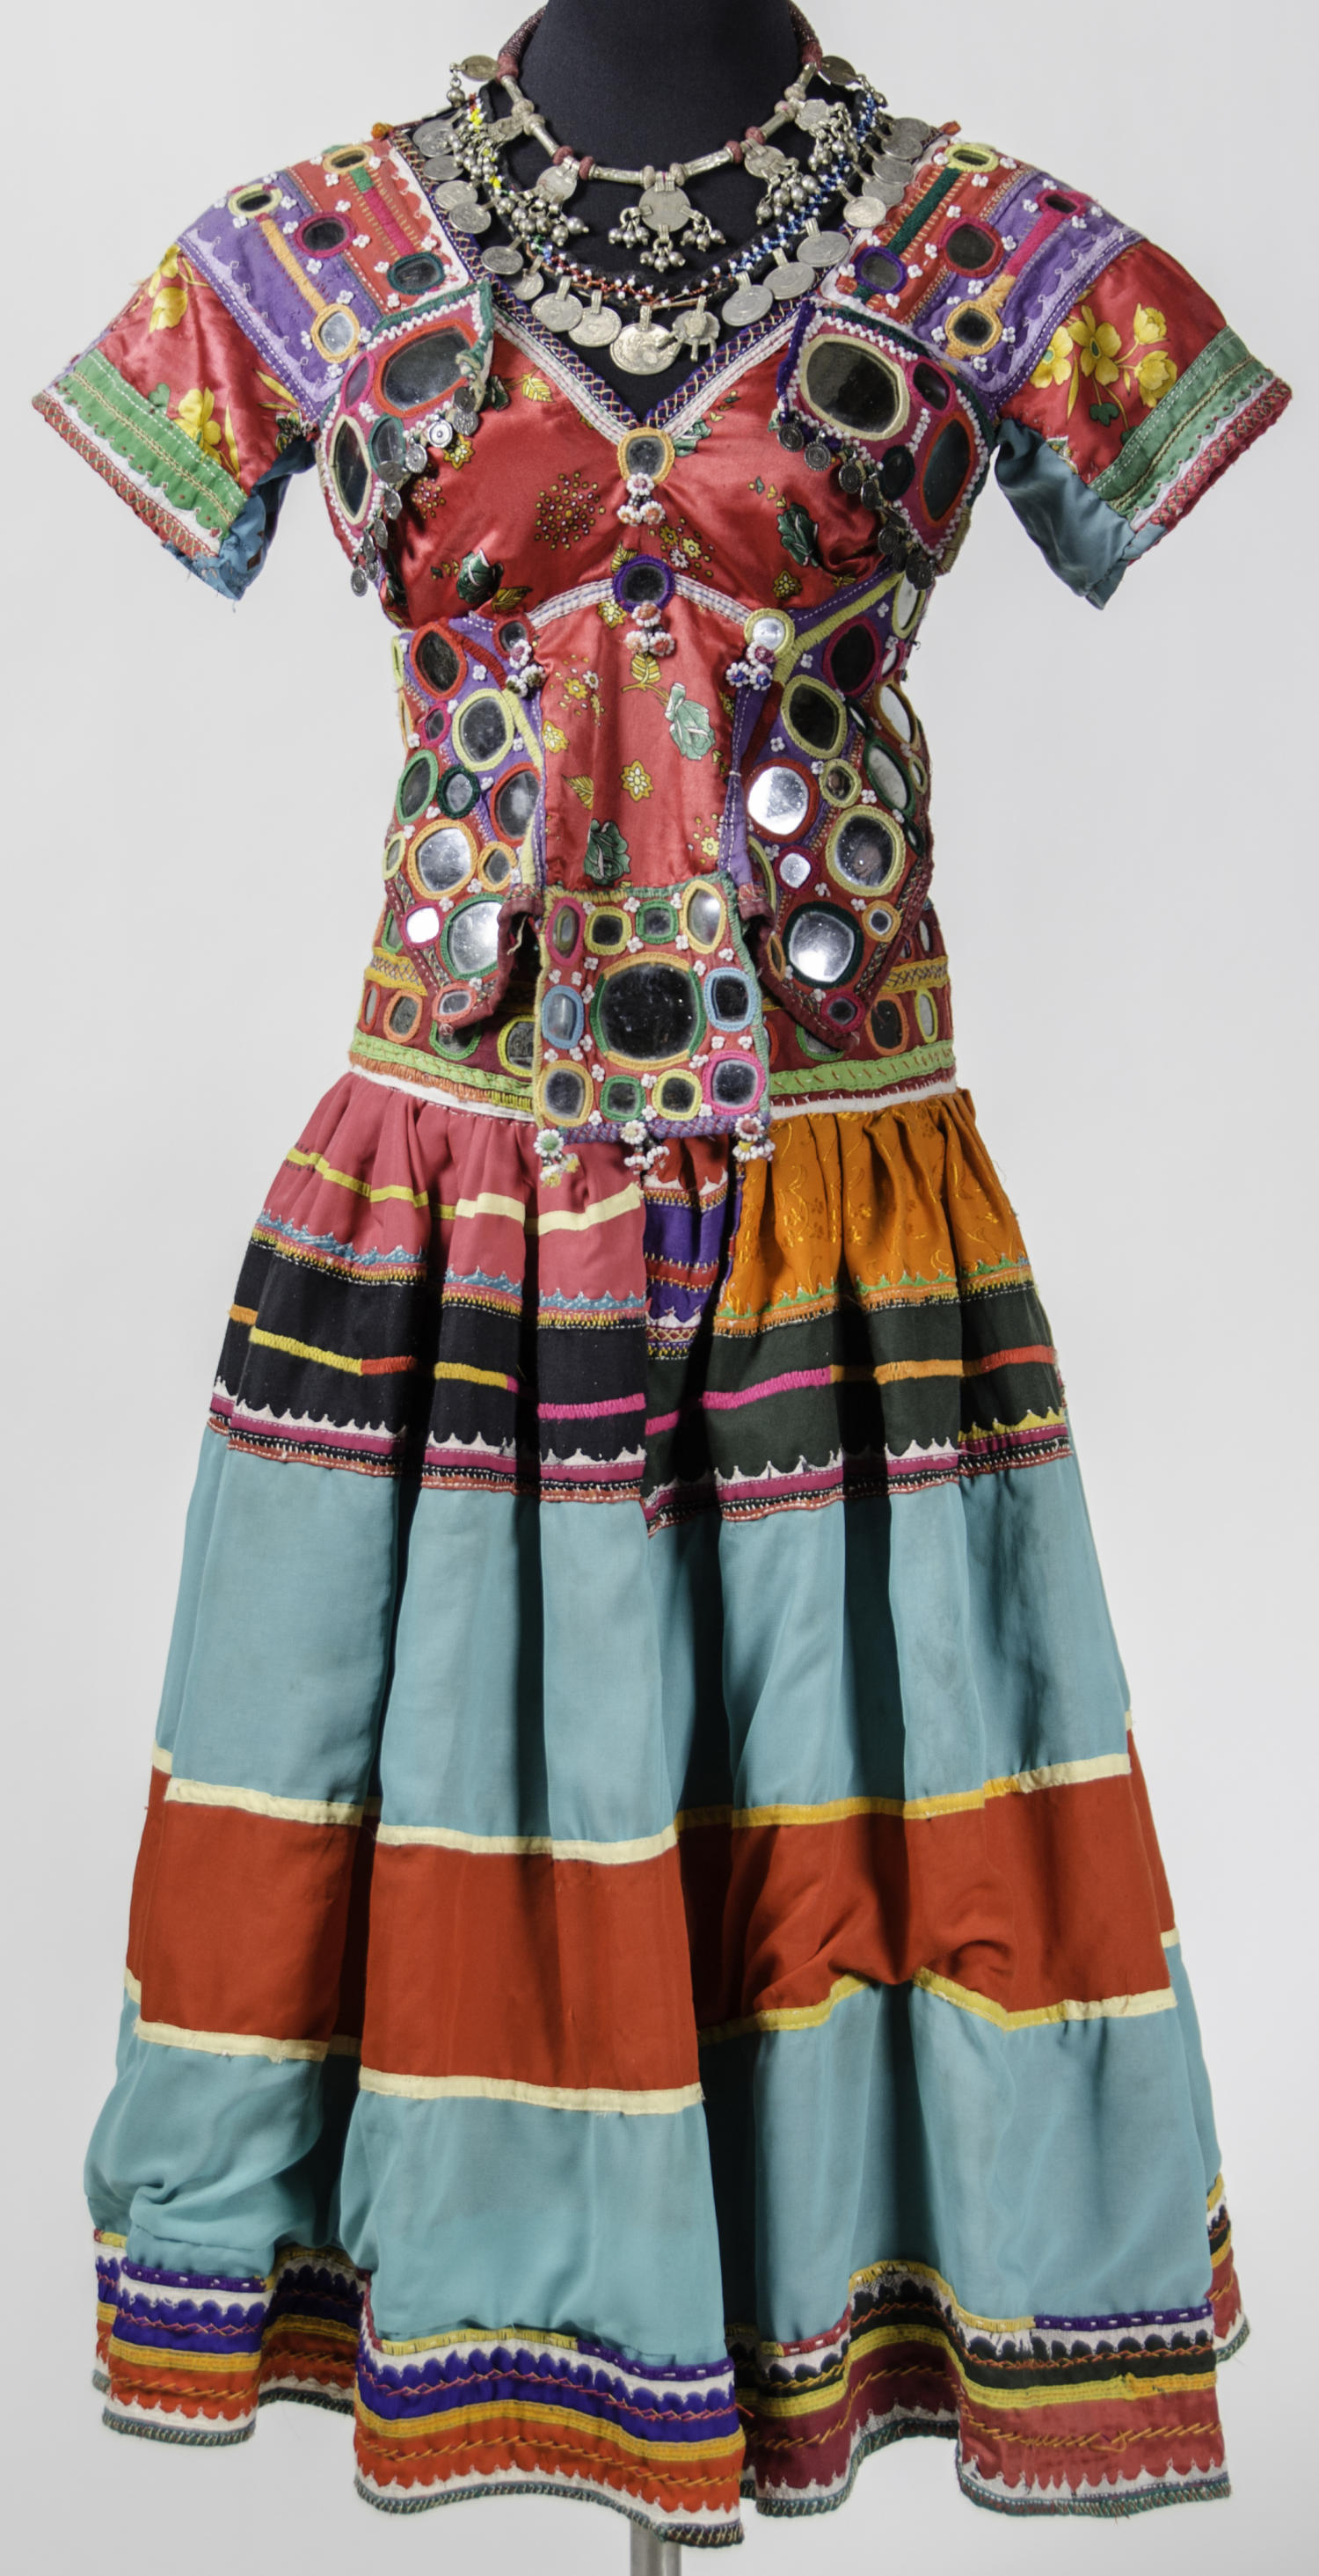 Belly Dancer's Costume - Banjara Peoples of India                                                                                                      [Sequence #]: 1 of 7